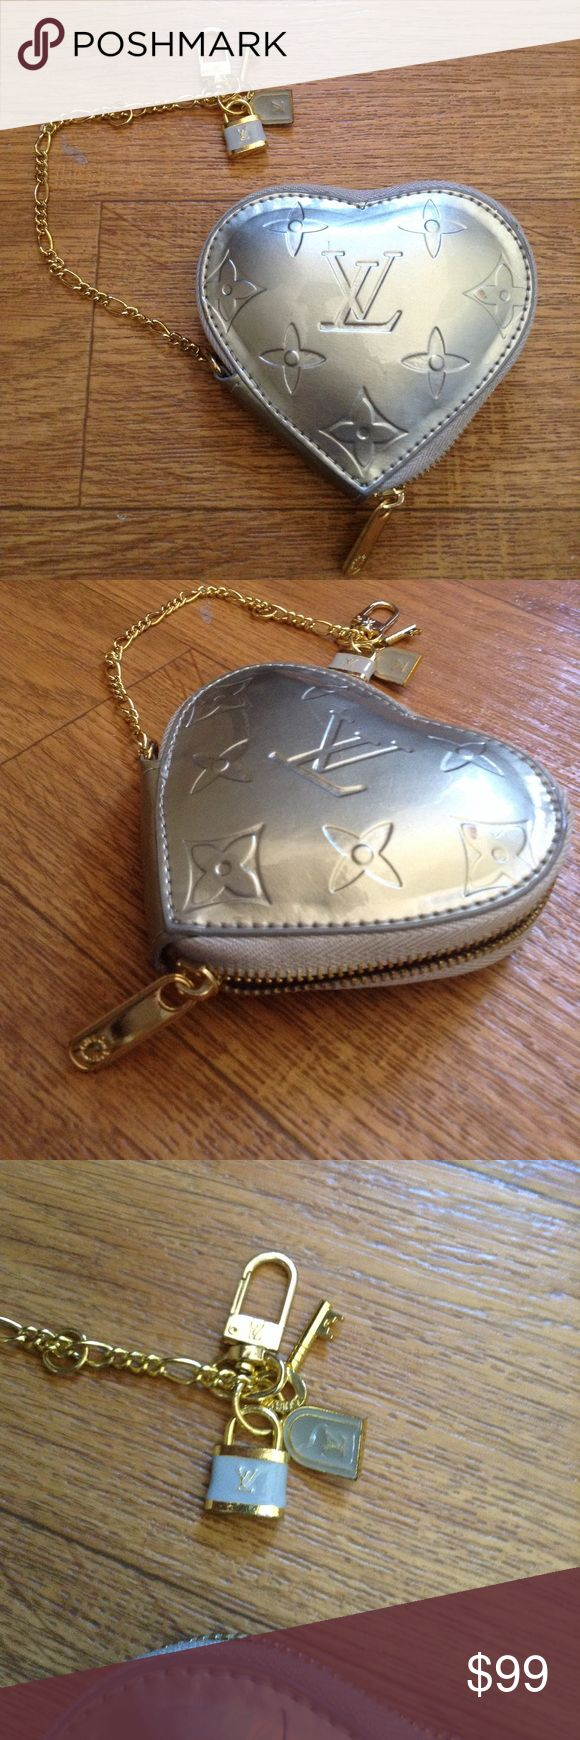 ❤️Heart Coin Purse Chain Wallet Bag Lock Key Charm Brand new!!! Wow!!! Sitting in my closet for too long and that's why it looks old used. I don't think it's a Louis Vuitton Vernis bag. Good working zipper.   Bundle up with my other items to get an extra discount and save on combined shipping!!    🏉👍🏻👠 Louis Vuitton Bags Wallets